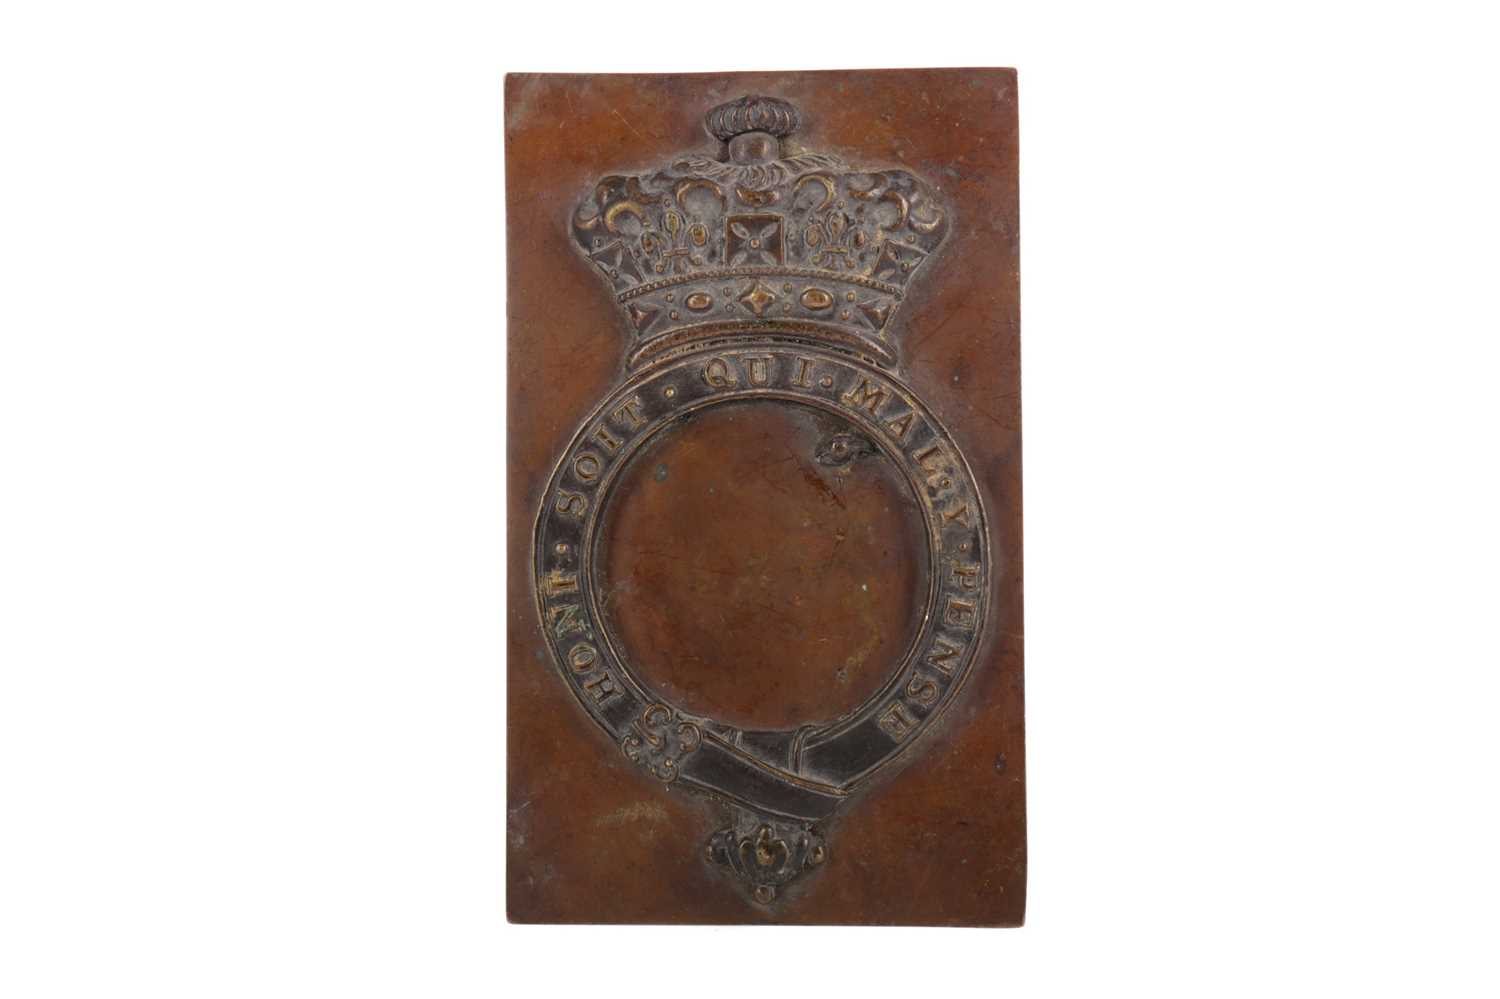 Lot 1306 - ROYAL INTEREST - EARLY 20TH CENTURY BRONZE PICTURE FRAME